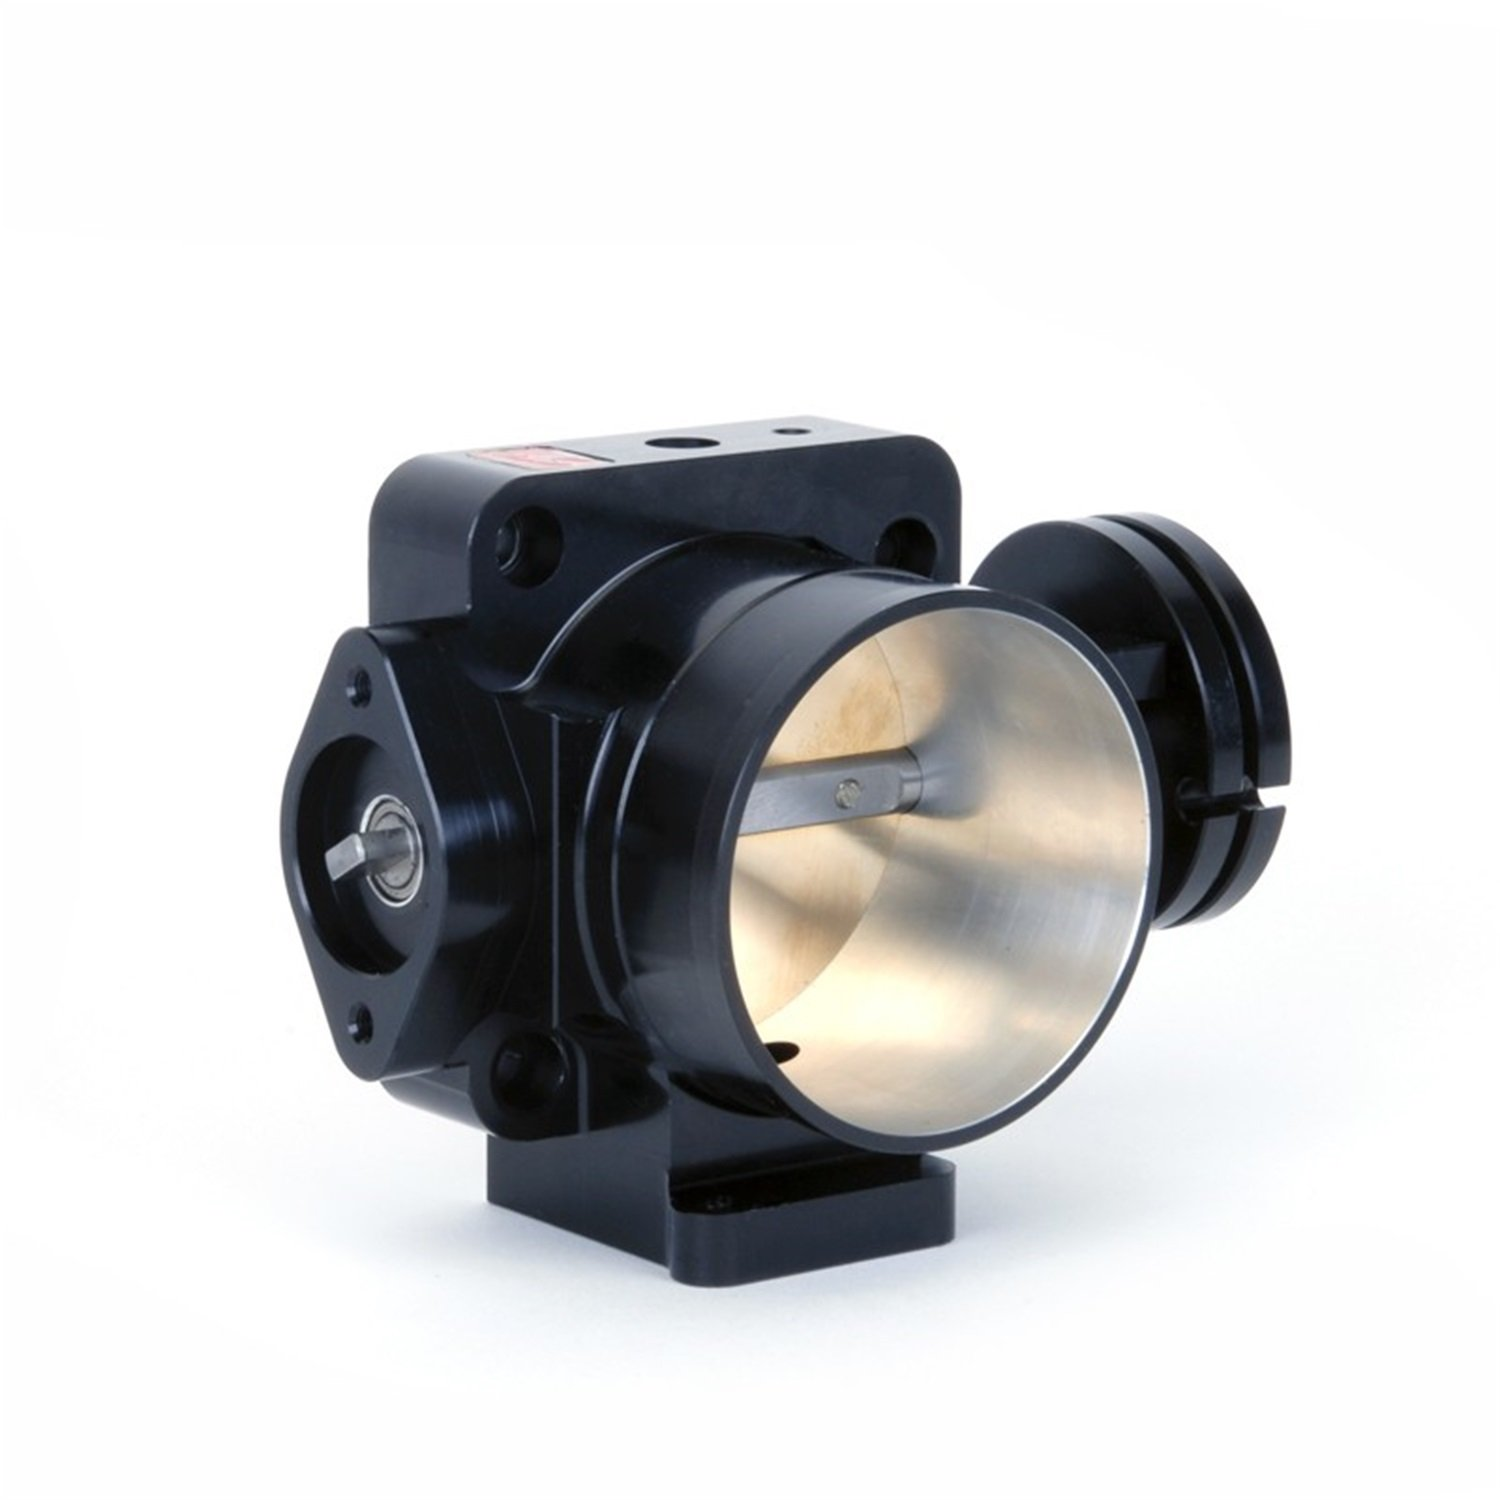 Skunk2 309-05-0085 K-Series Pro Series 70mm Black Anodized Throttle Body by Skunk2 Racing